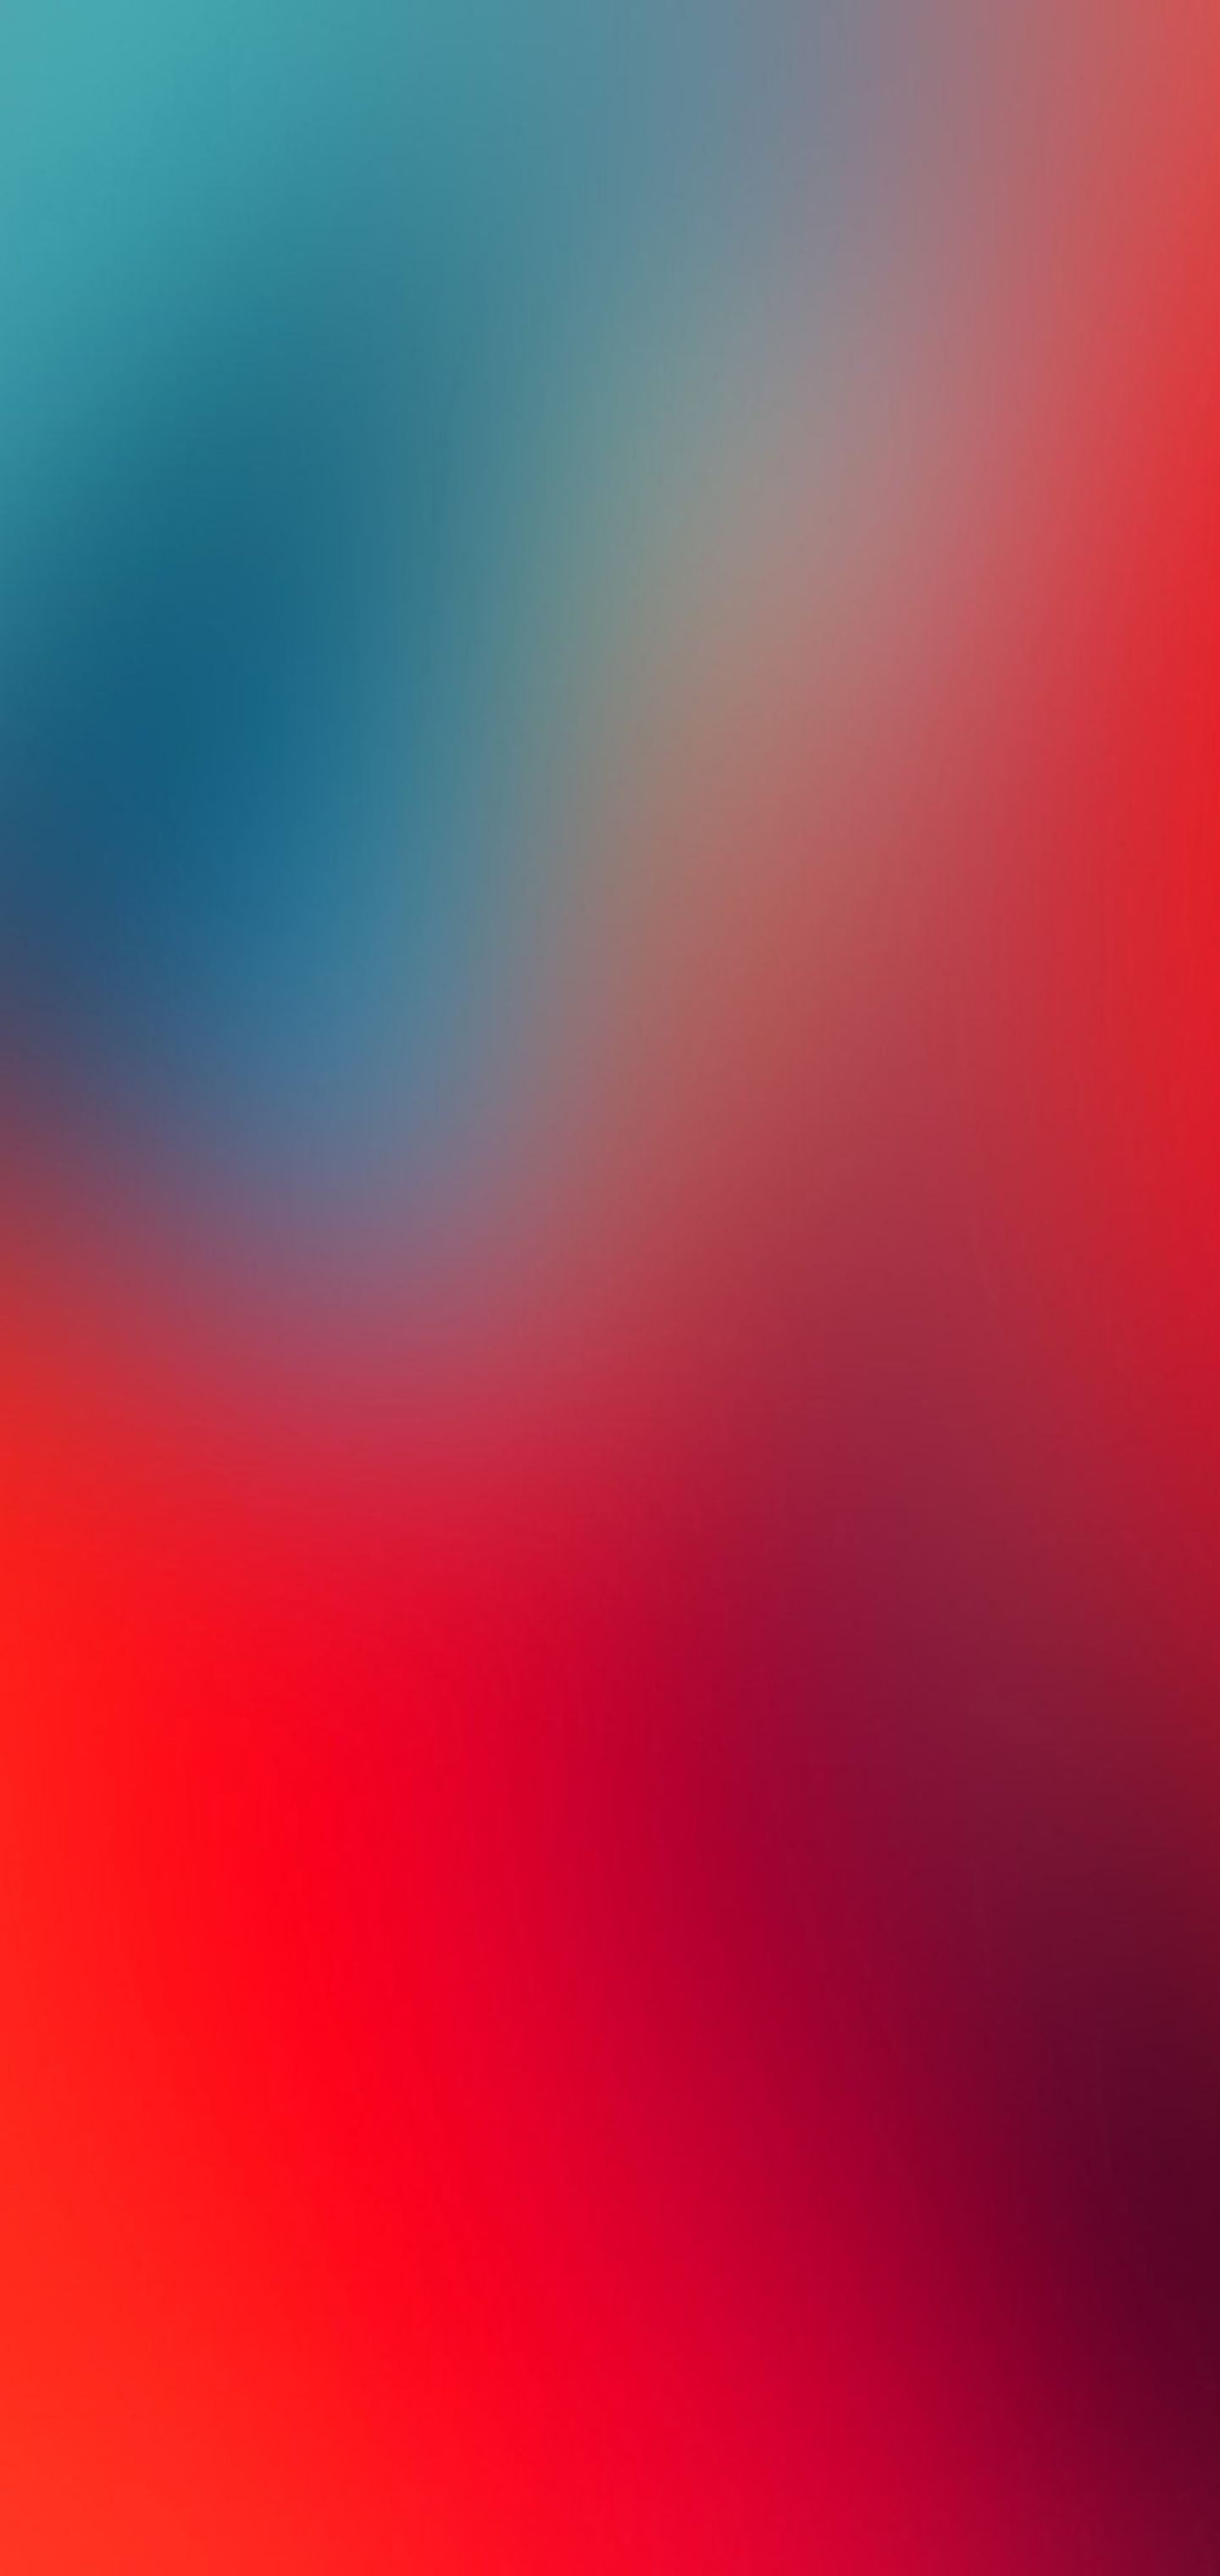 iPhone 12 Wallpapers 1440x3040